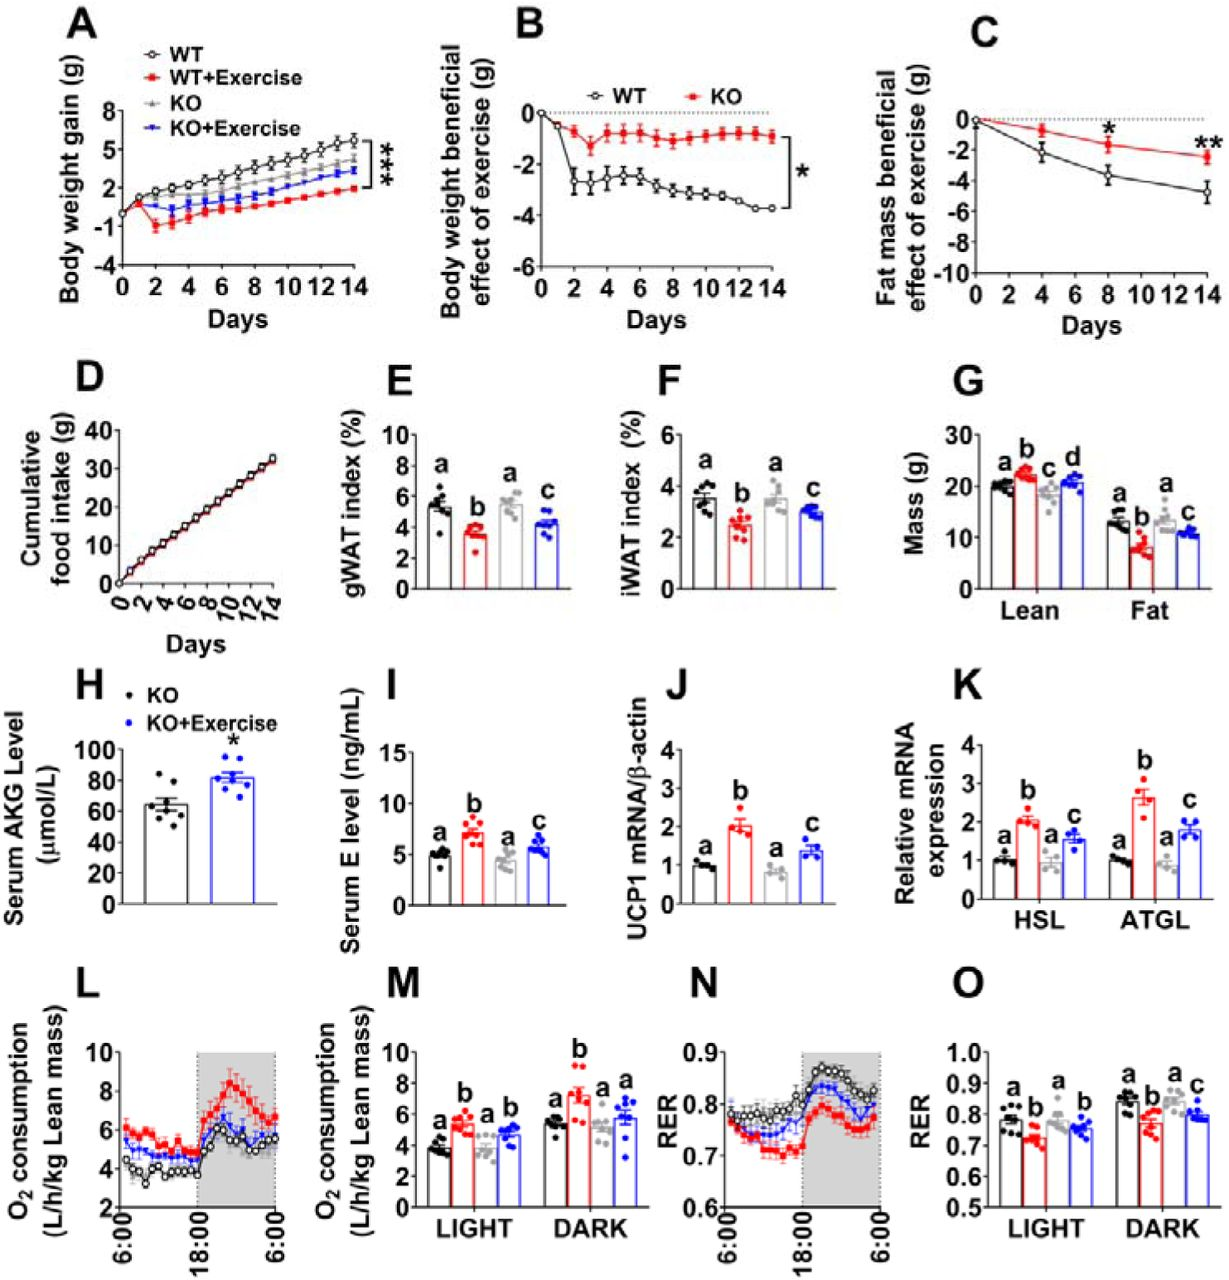 OXGR1 is required for metabolic beneficial effects of resistance exercise (A). Body weight gain in male WT littermates and OXGR1KO mice. At 8 weeks of age, male C57BL/6 WT control or OXGR1KO mice were switched to HFD. After 12 weeks of HFD feeding, mice were further divided into two groups, receiving non-exercise or resistance exercise for 14 days. (n = 8 per group). (B). Exercise-induced body weight loss in male WT littermates and OXGR1KO mice. Body weights from exercise mice were subtracted by the average body weight of non-exercise control group for each genotype (n = 8 per group). (C). Exercise-induced fat mass loss in male WT littermates and OXGR1KO mice. Fat mass from exercise mice were subtracted by the average fat mass of non-exercise control group for each genotype (n = 8 per group). (D). Cumulative food intake of male WT littermates and OXGR1KO mice after 14-day resistance exercise (n = 8 per group). (E-F). Weight index of gWAT (E) and iWAT (F) of male OXGR1KO mice after 14-days resistance exercise (n = 8 per group). (G). Body composition of male OXGR1KO mice after 14-days resistance exercise (n = 8 per group). (H). Serum AKG levels of male OXGR1KO mice after resistance exercise. Male OXGR1KO mice (10 weeks) fed with normal chow were receiving resistance exercise for 40 min (n = 8 per group). The serum AKG levels were tested before and immediately after exercise. (I). Serum E level in male OXGR1KO mice after 14-day resistance exercise (n = 8 per group). (J-K). The mRNA expression of UCP1 (J) in the BAT or HSL and ATGL (K) in the gWAT of male OXGR1KO mice after 14-day resistance exercise (n = 4 per group). (L-O). Oxygen consumption (L-M) and RER (N-O) in male OXGR1KO mice after 14-day resistance exercise (n = 8 per group). Results are presented as mean ± SEM. In (A-D) *p≤0.05, ** p≤0.01 by two-way ANOVA followed by post hoc Bonferroni tests. In (H), *p≤0.05 by non-paired Student's t test. In (E-G), (I-K), (M) and (O), different letters between bars indicate